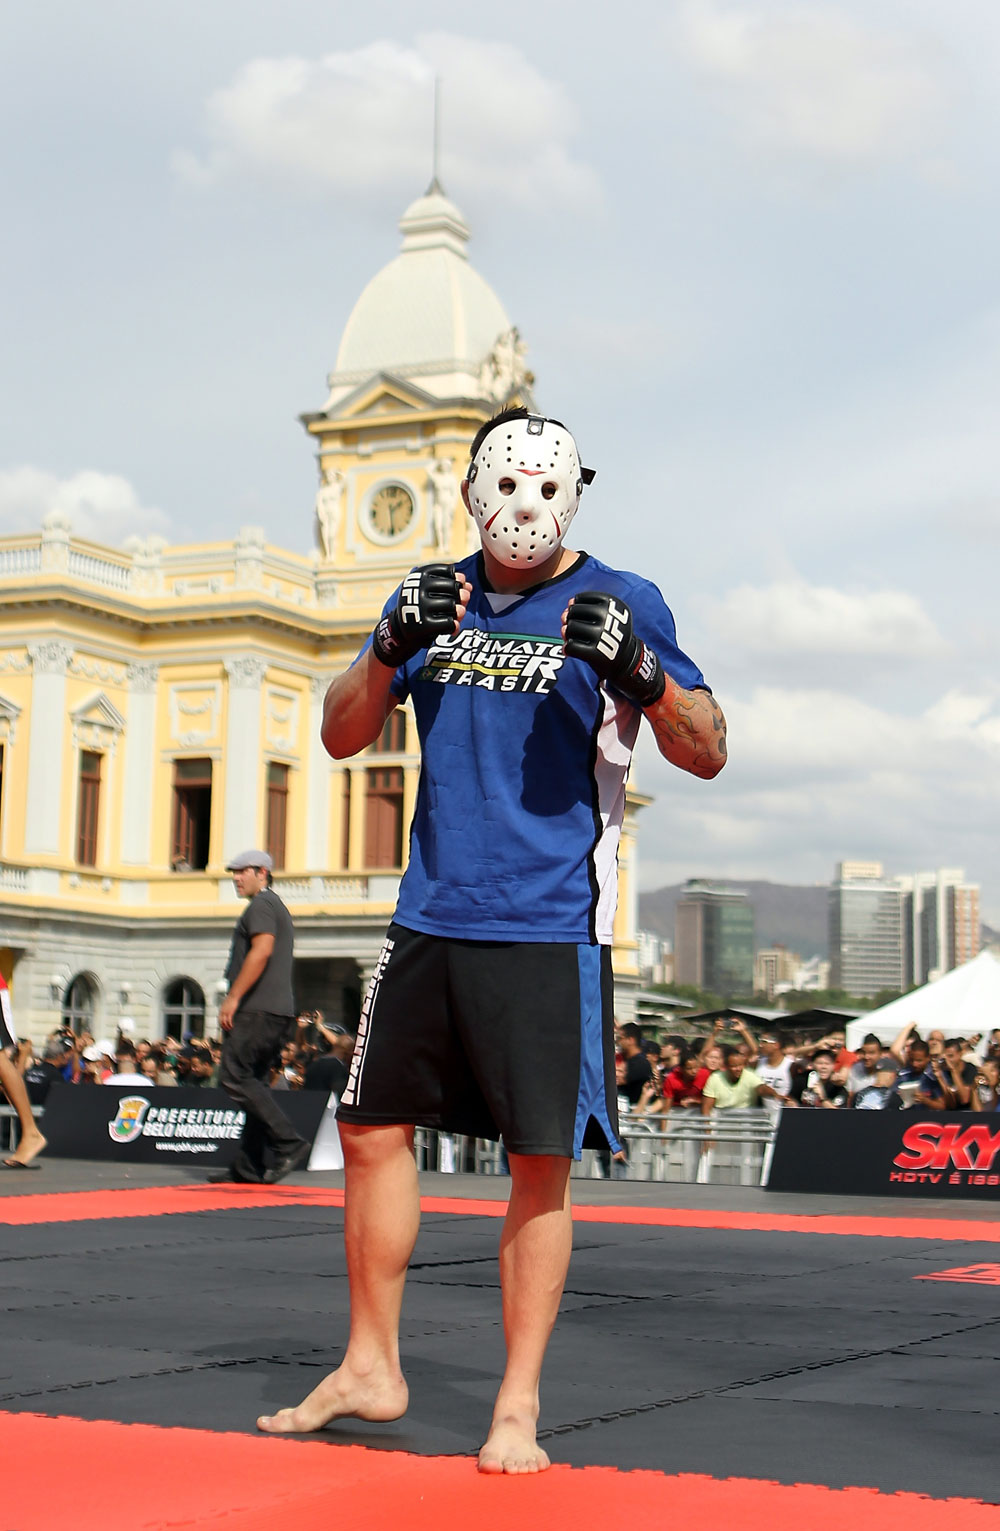 BELO HORIZONTE, BRAZIL - JUNE 20:   Rony Mariano Bezerra poses for a photo during the UFC 147 open workouts at Praca da Estacao on June 20, 2012 in Belo Horizonte, Brazil.  (Photo by Josh Hedges/Zuffa LLC/Zuffa LLC via Getty Images)